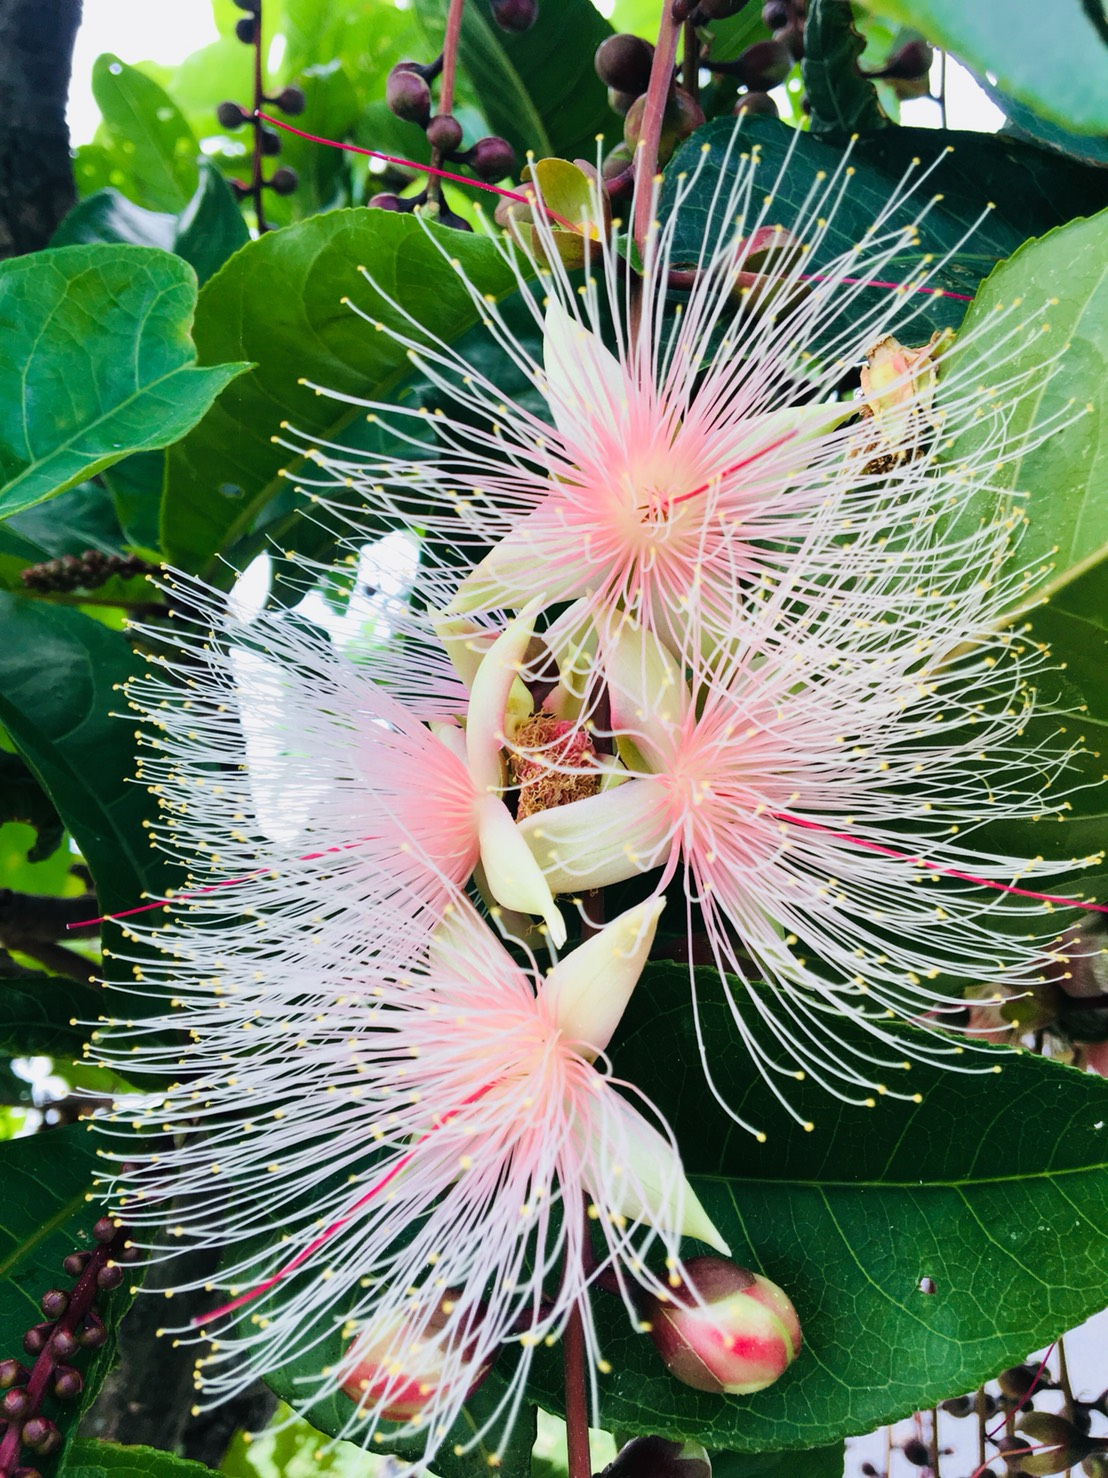 The Beautiful blossoms of Small-leaved Barringtonia in Yilan 52-jia Wetland. (Image: Sandy Wang)